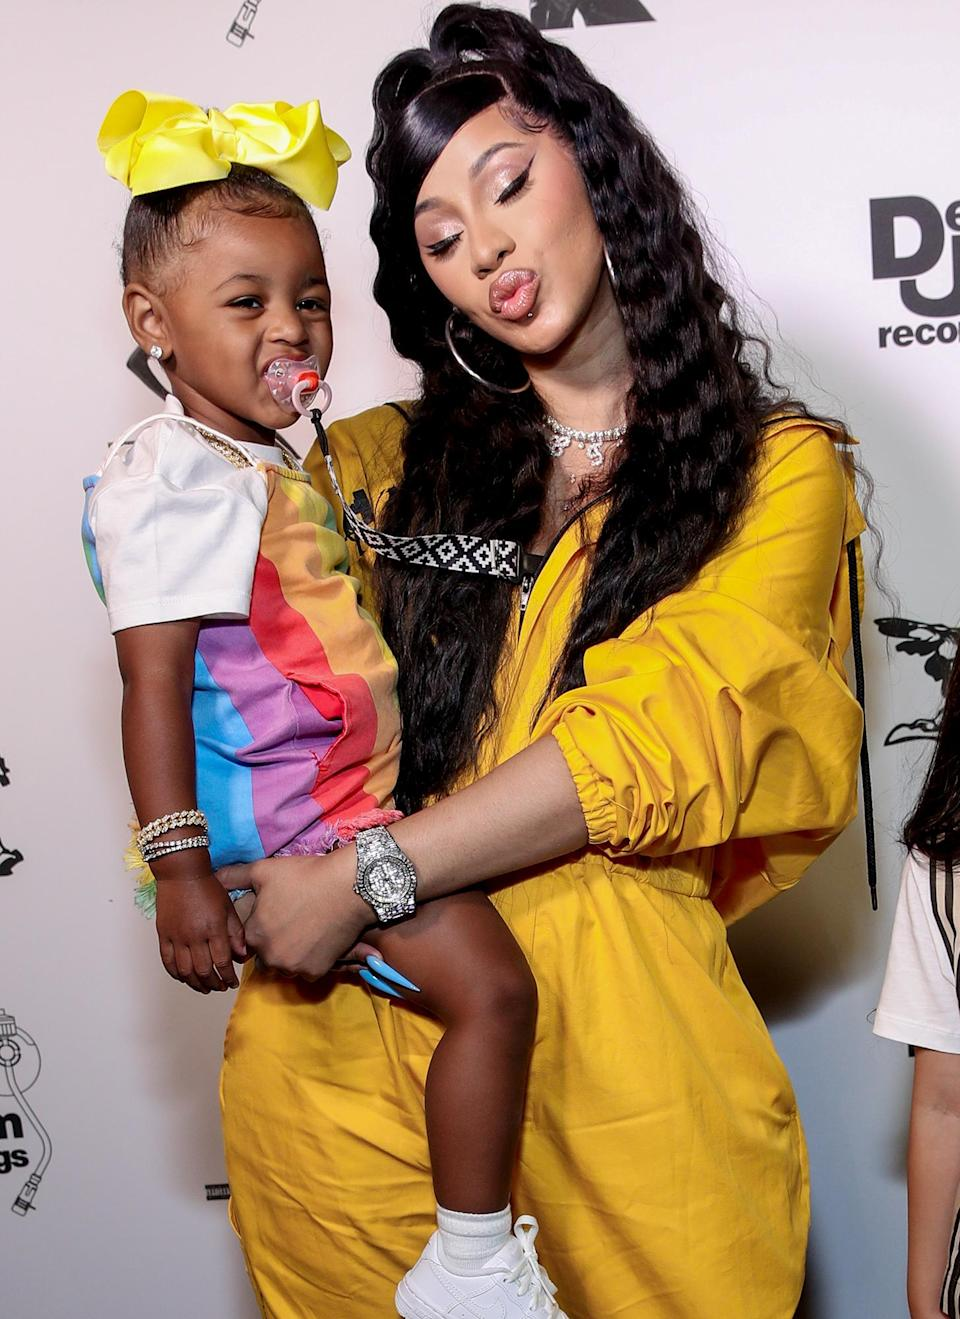 """<p><a href=""""https://people.com/tag/cardi-b/"""" rel=""""nofollow noopener"""" target=""""_blank"""" data-ylk=""""slk:Cardi B"""" class=""""link rapid-noclick-resp"""">Cardi B</a> is making sure to raise her daughter with self-confidence.</p> <p>The rapper is mother to 2-year-old daughter <a href=""""https://people.com/parents/cardi-b-offset-welcome-daughter-kulture-kiari/"""" rel=""""nofollow noopener"""" target=""""_blank"""" data-ylk=""""slk:Kulture Kiari"""" class=""""link rapid-noclick-resp"""">Kulture Kiari</a>, whom she's raising with her husband, rapper Offset. While Kulture is already taking after her mom with a sassy and funny personality, the toddler already has over one million followers on <a href=""""https://www.instagram.com/kulturekiari/"""" rel=""""nofollow noopener"""" target=""""_blank"""" data-ylk=""""slk:Instagram"""" class=""""link rapid-noclick-resp"""">Instagram</a>. </p> <p>Cardi shared with <a href=""""https://www.billboard.com/articles/news/women-in-music/9492018/cardi-b-woman-of-the-year-billboard-cover-story-interview-2020/"""" rel=""""nofollow noopener"""" target=""""_blank"""" data-ylk=""""slk:Billboard"""" class=""""link rapid-noclick-resp""""><i>Billboard</i></a> that above all else she wants to make sure that Kulture knows that she's """"that girl.""""</p> <p>""""I always want her to know that she's beautiful,"""" she said. """"She knows what type of person I am, and when she gets older, clearly she's gonna hear me expressing myself because we live in the same damn house. I just want her to know: I might be a little crazy, but I have a good heart and I love her. I want her to be confident always.""""</p> <p>She added, """"Don't let one comment break you and make you feel like you're not that girl. You that girl.""""</p>"""